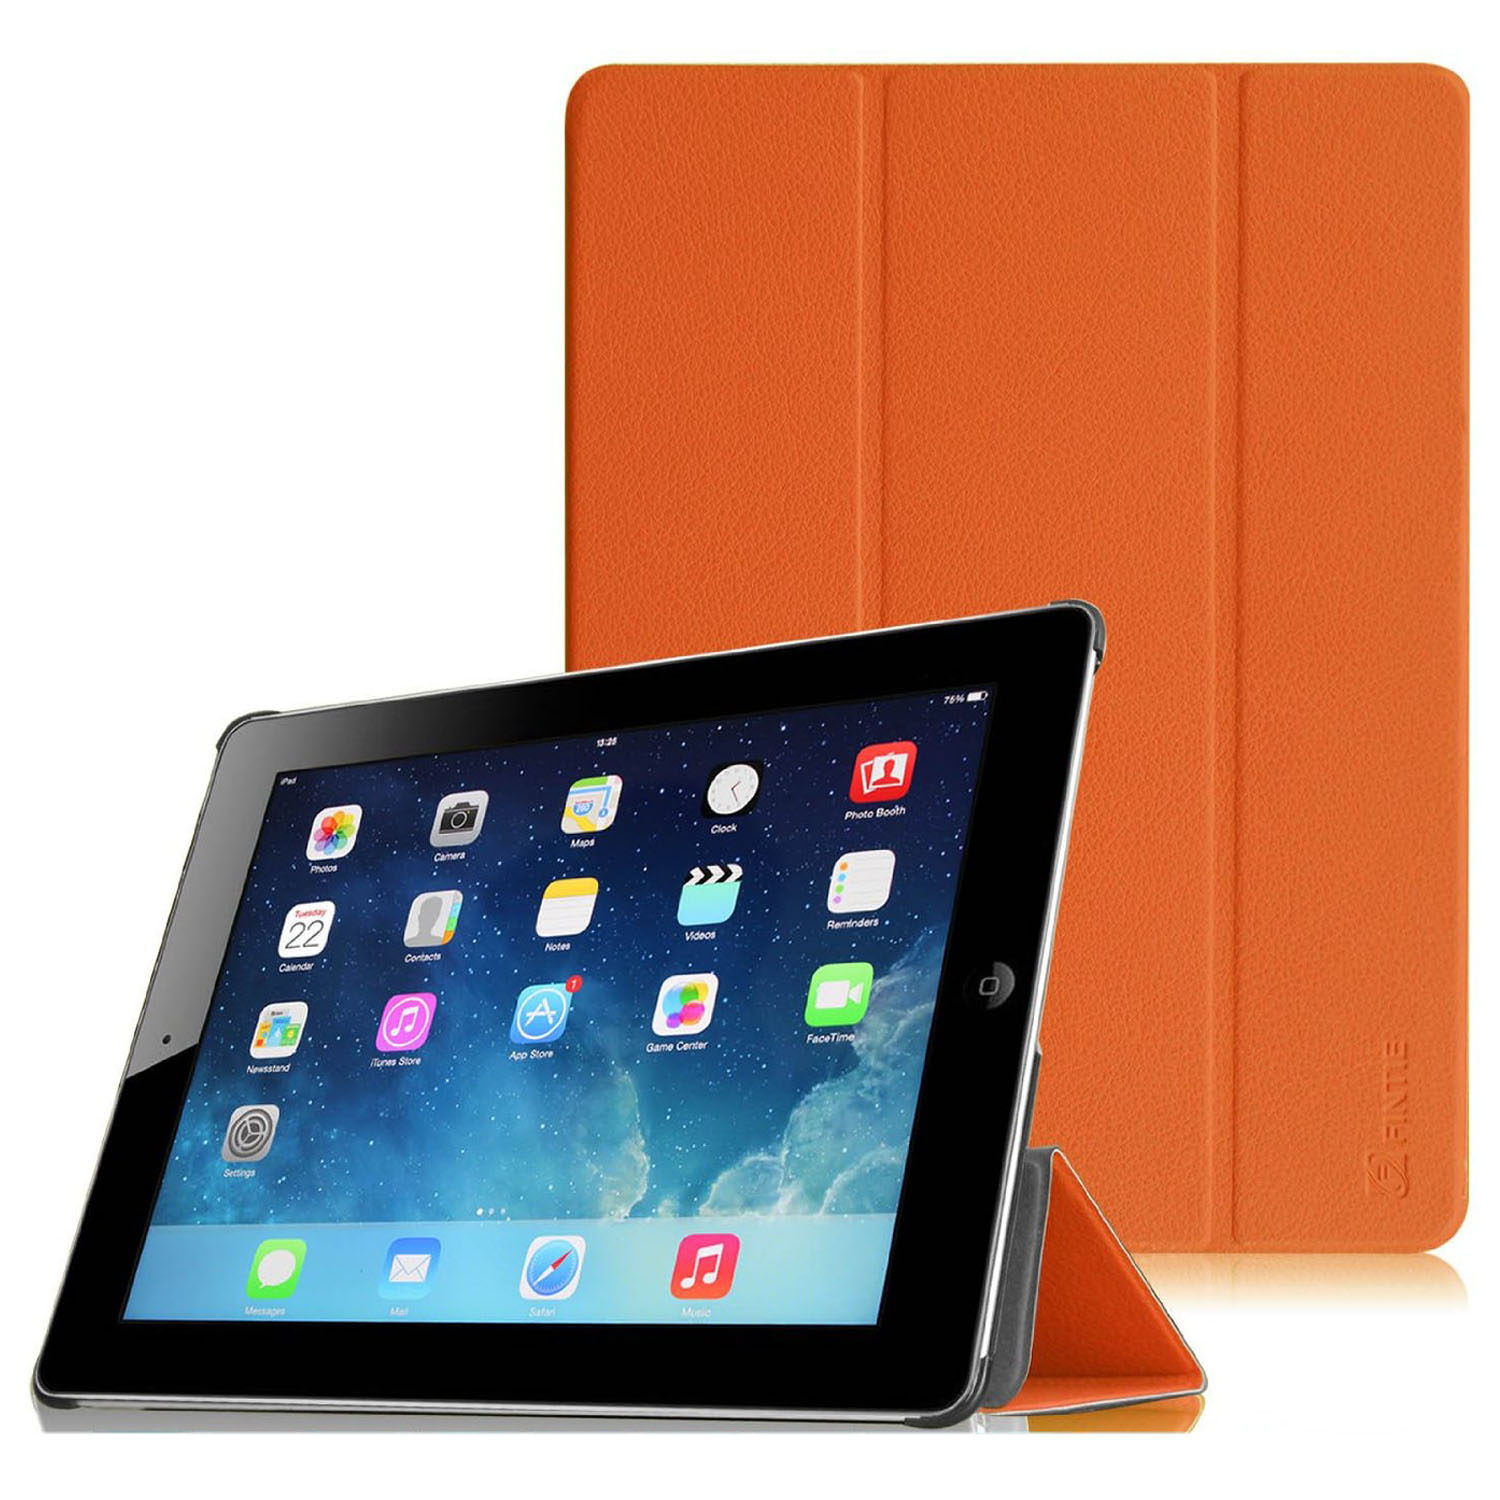 Apple iPad 4th, iPad 3 & iPad 2 SmartShell Case - Fintie Ultra Slim Lightweight Smart Cover with Auto Wake/Slee, Orange